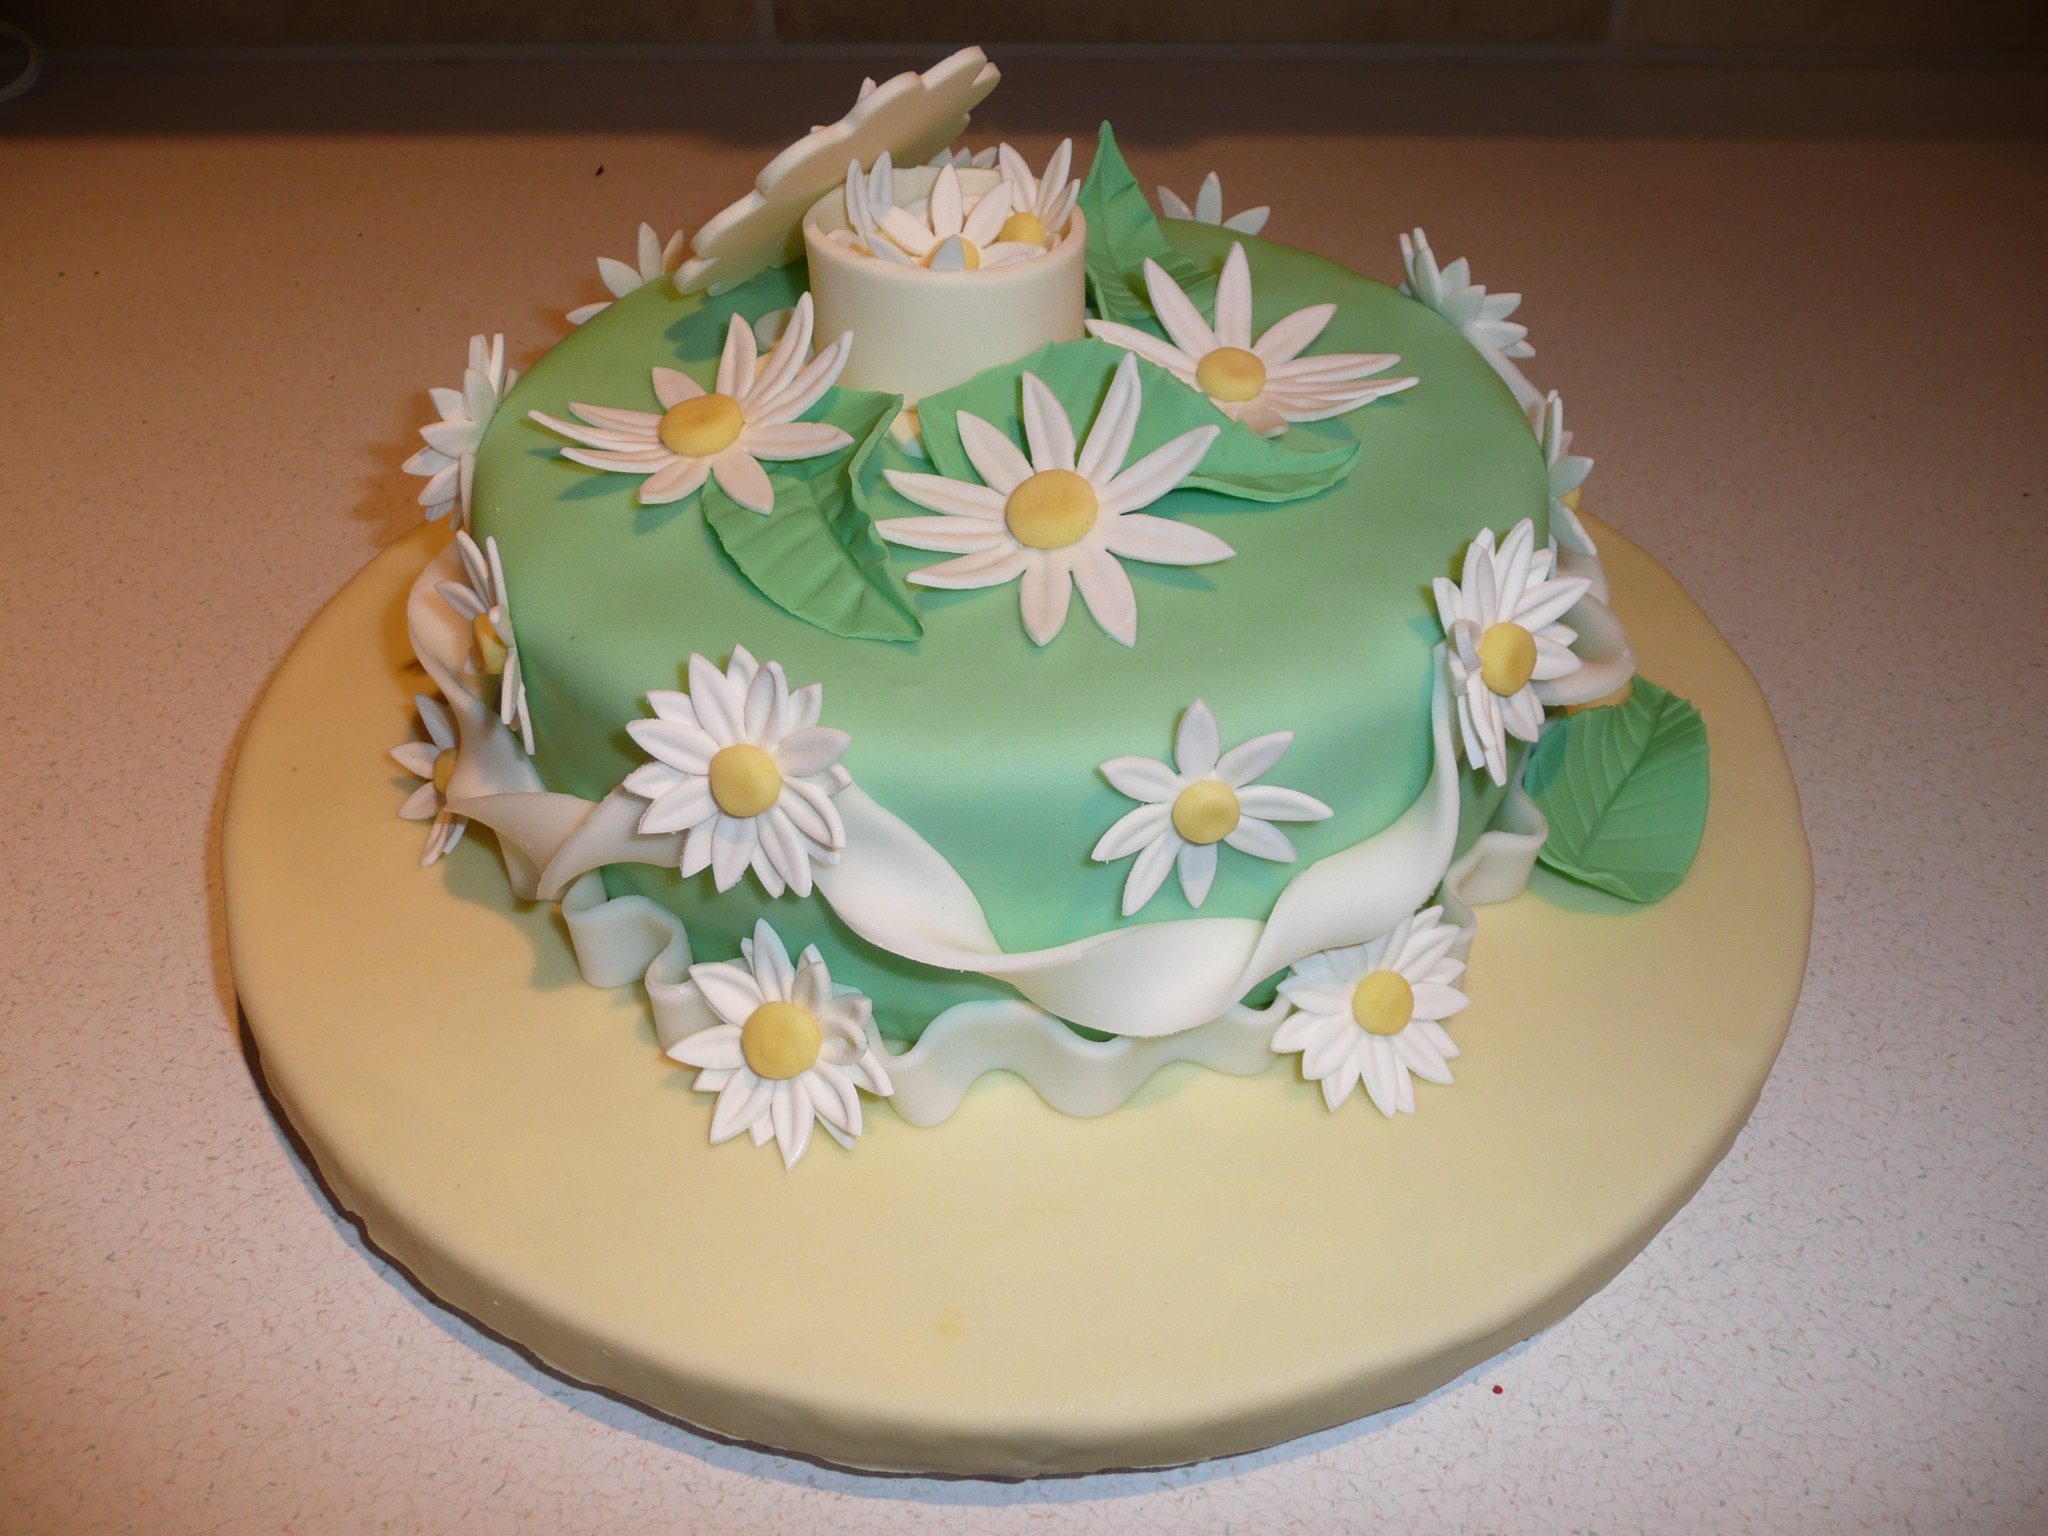 It is an 8 inch round cake covered in green fondant. The board is also covered in yellow fondant. I made daisies ...